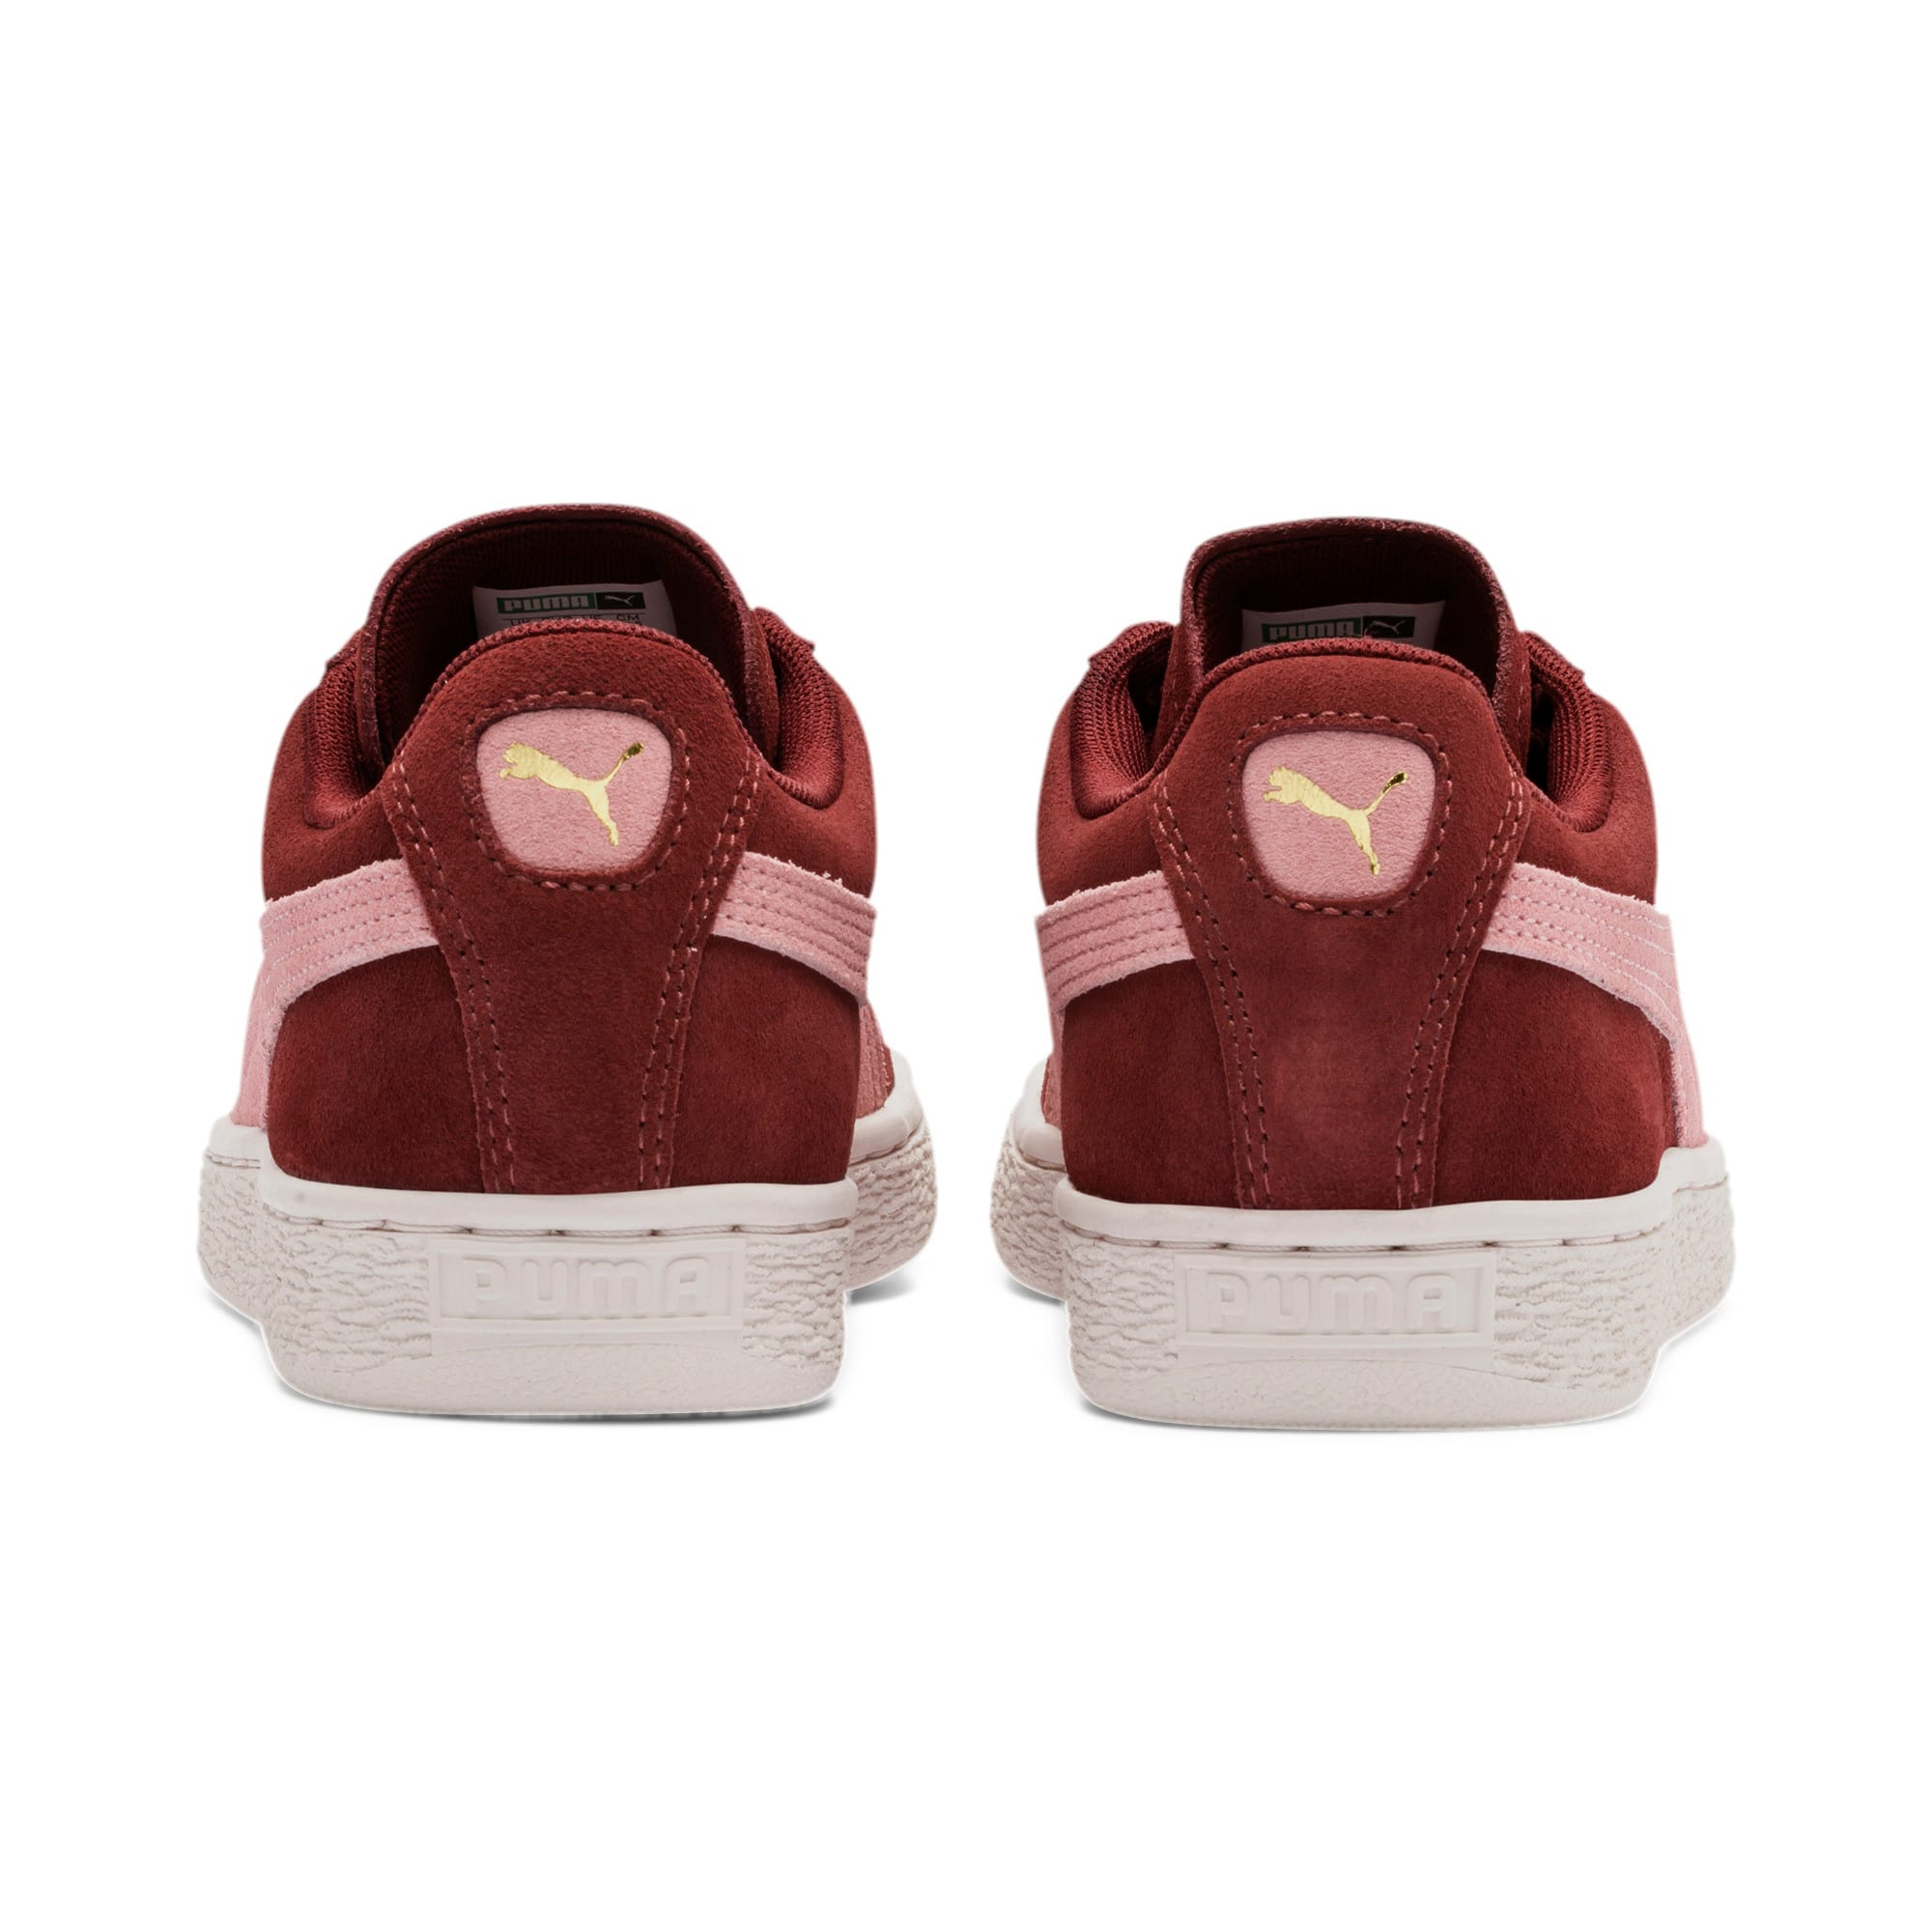 Thumbnail 4 of Suede Classic Women's Sneakers, Fired Brick-Bridal Rose, medium